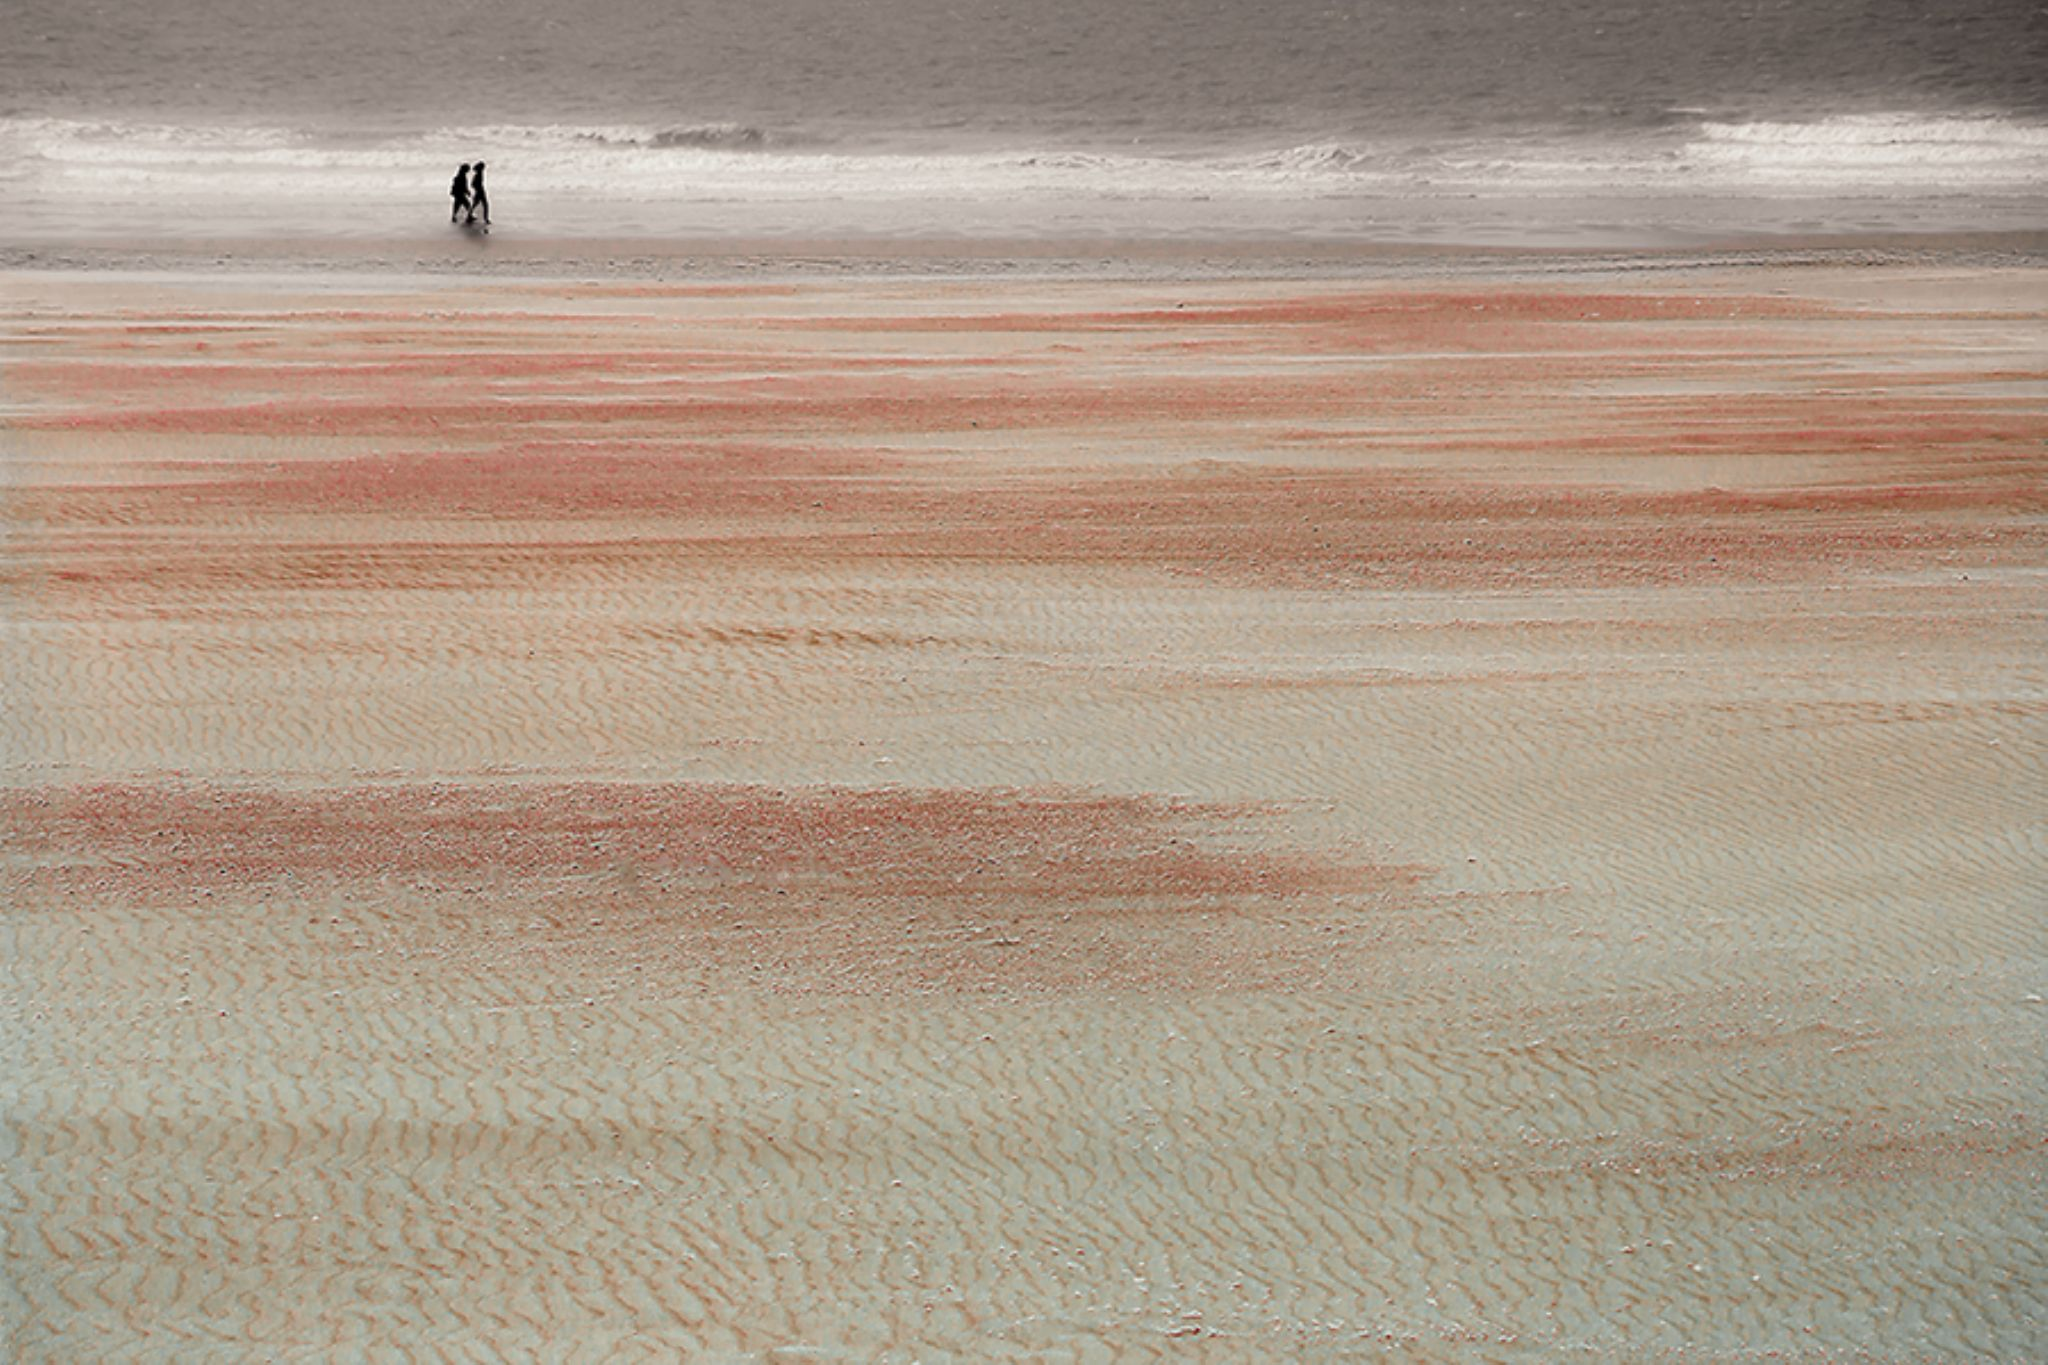 beach walking by gilclaes